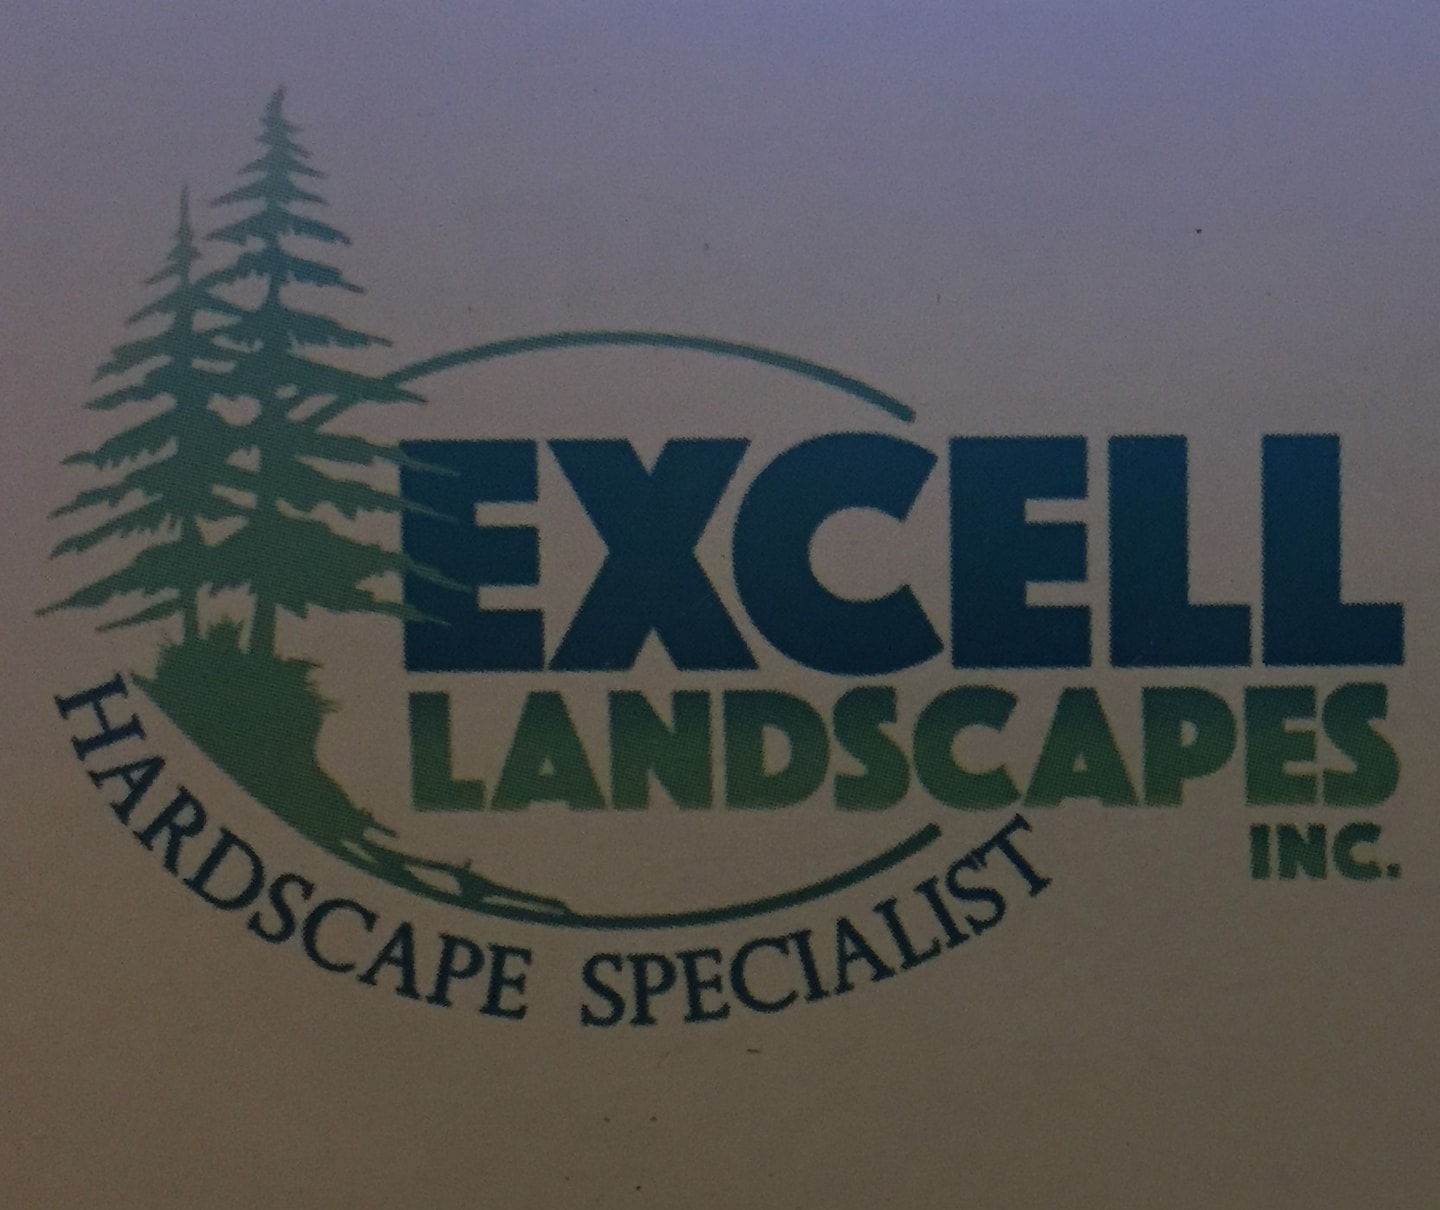 Excell Landscapes Inc.